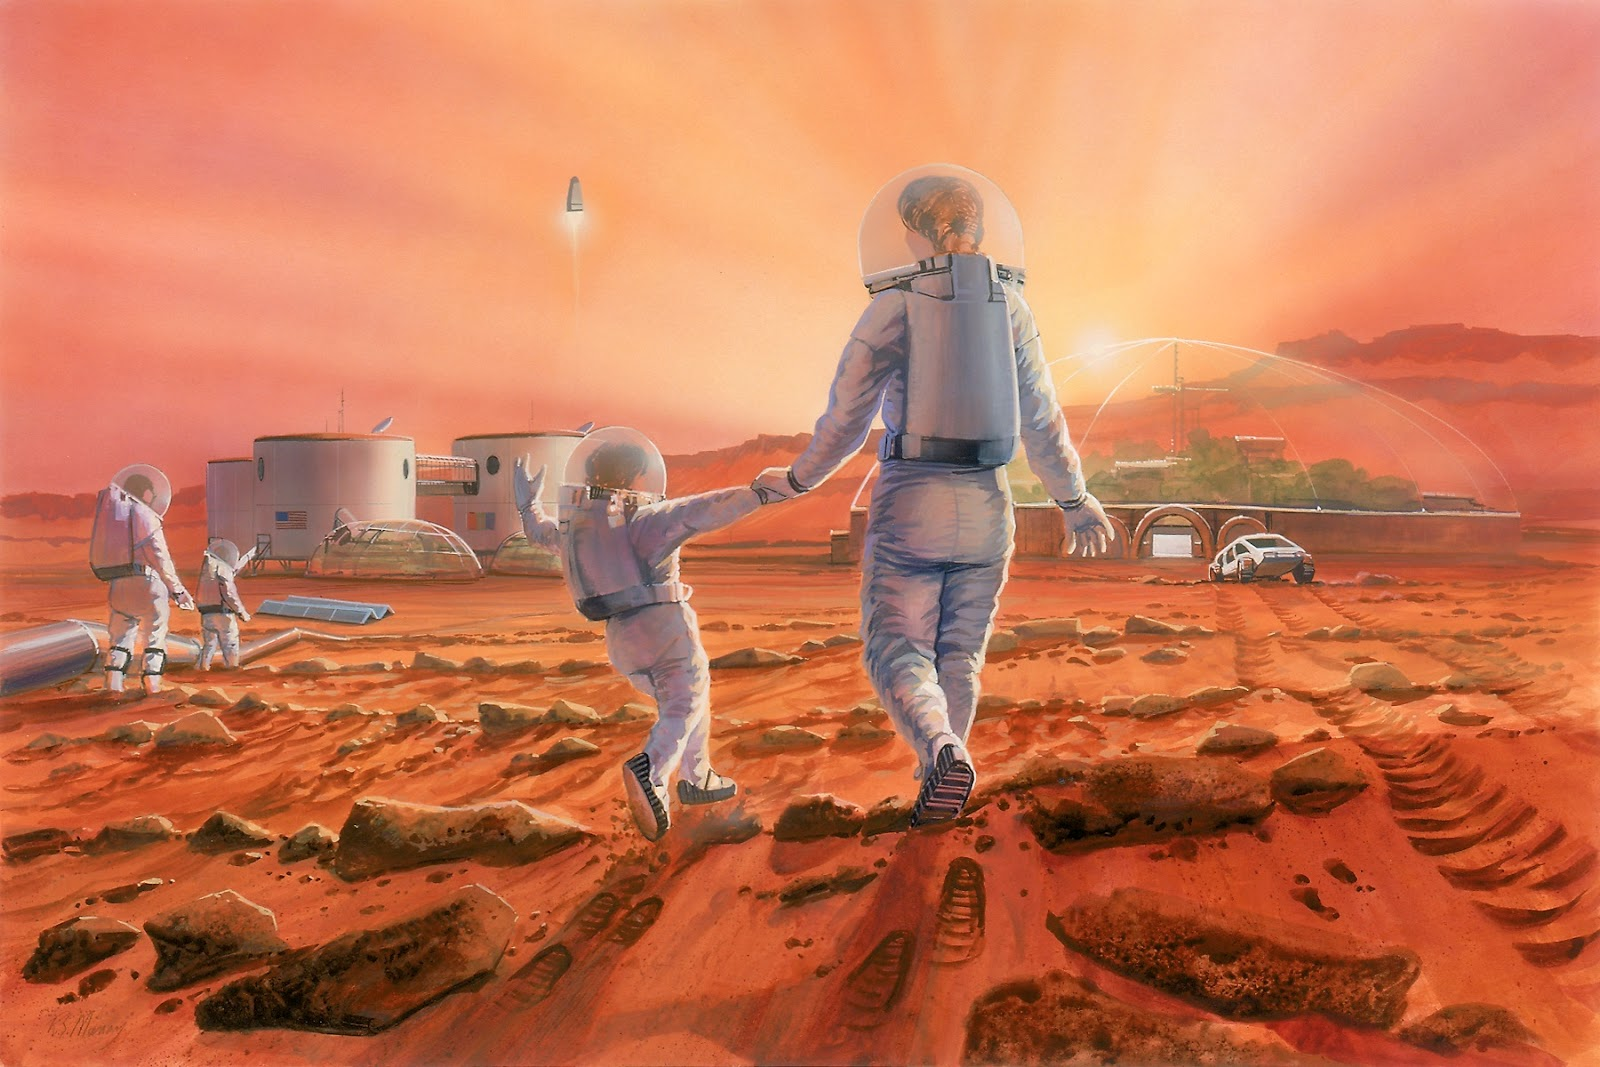 Family at the human colony on Mars by Robert Murray / The Mars Society